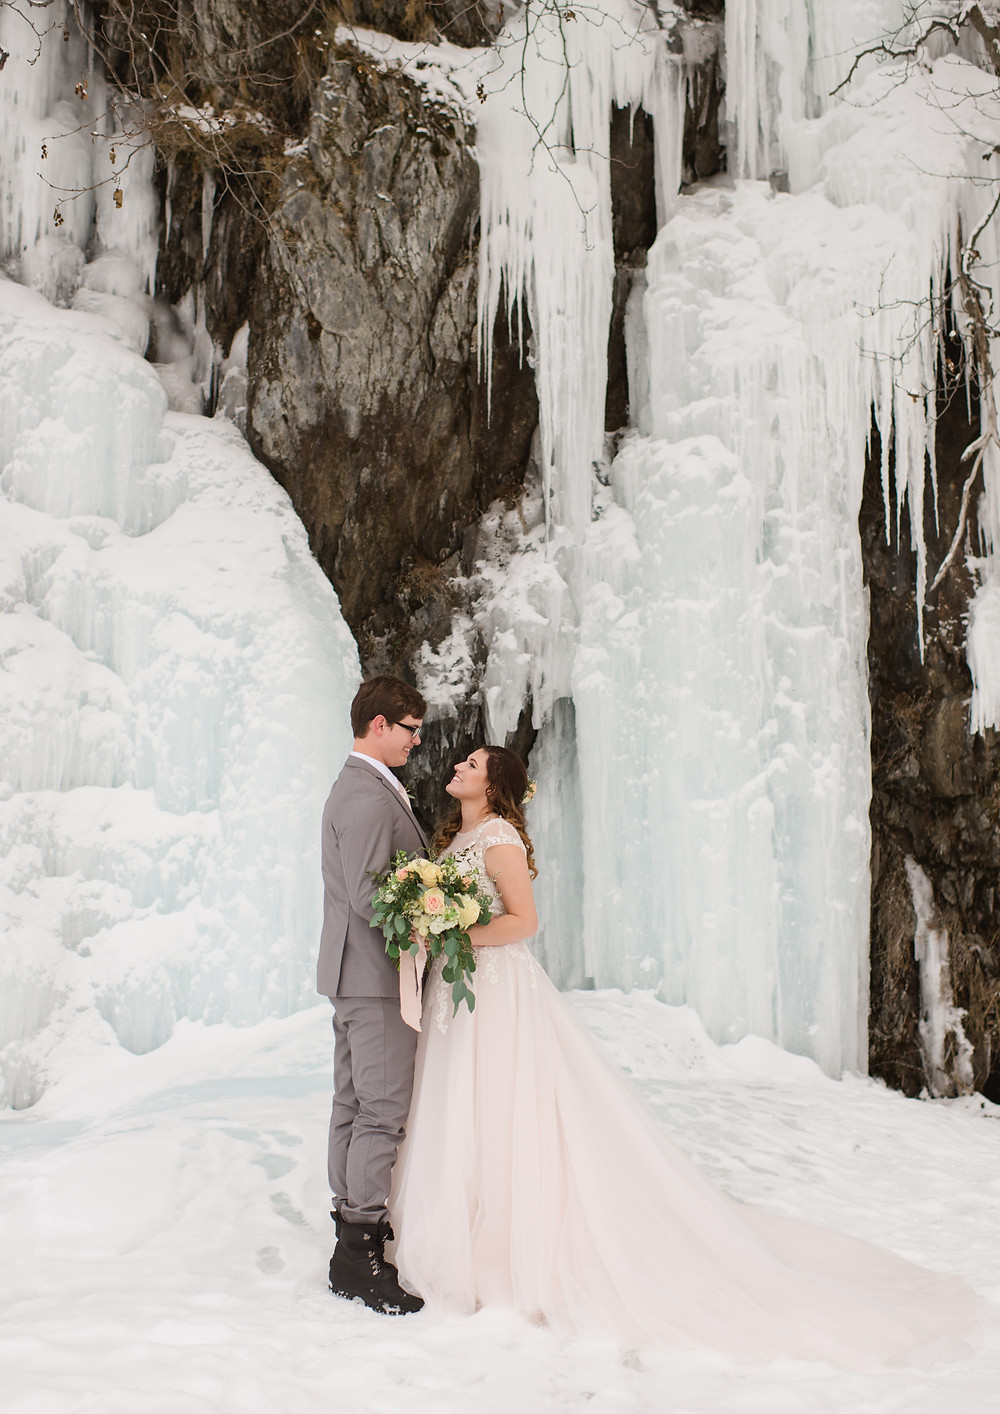 Simple and scenic ceremony in nature with high quality photographer